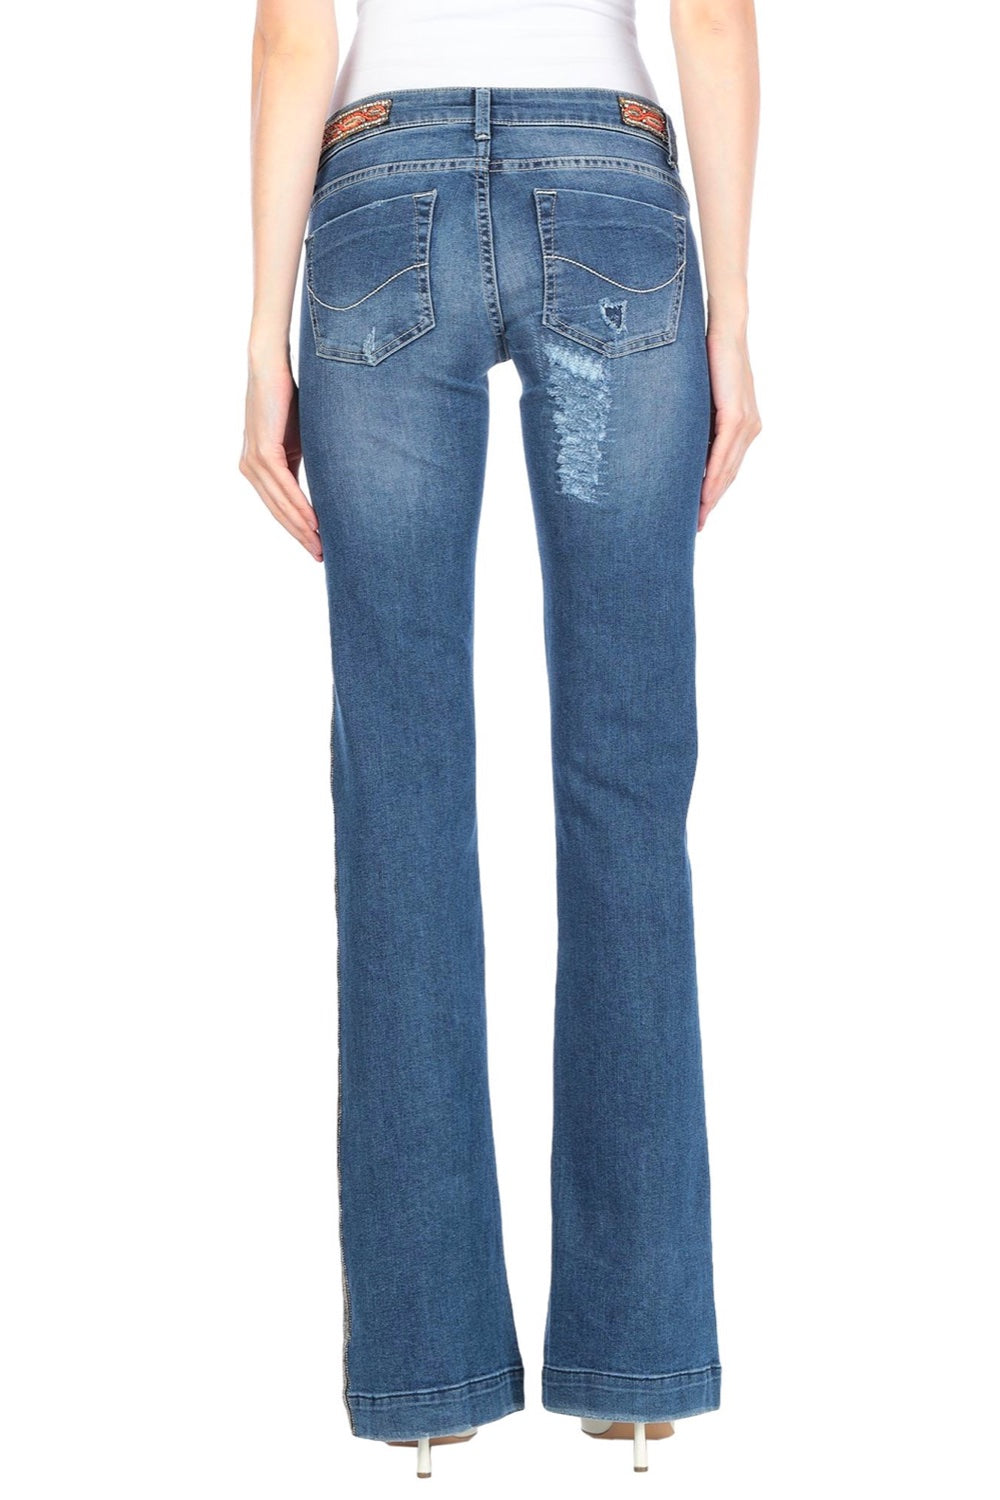 No.5 Embroidered Jeans - The Bobby Boga